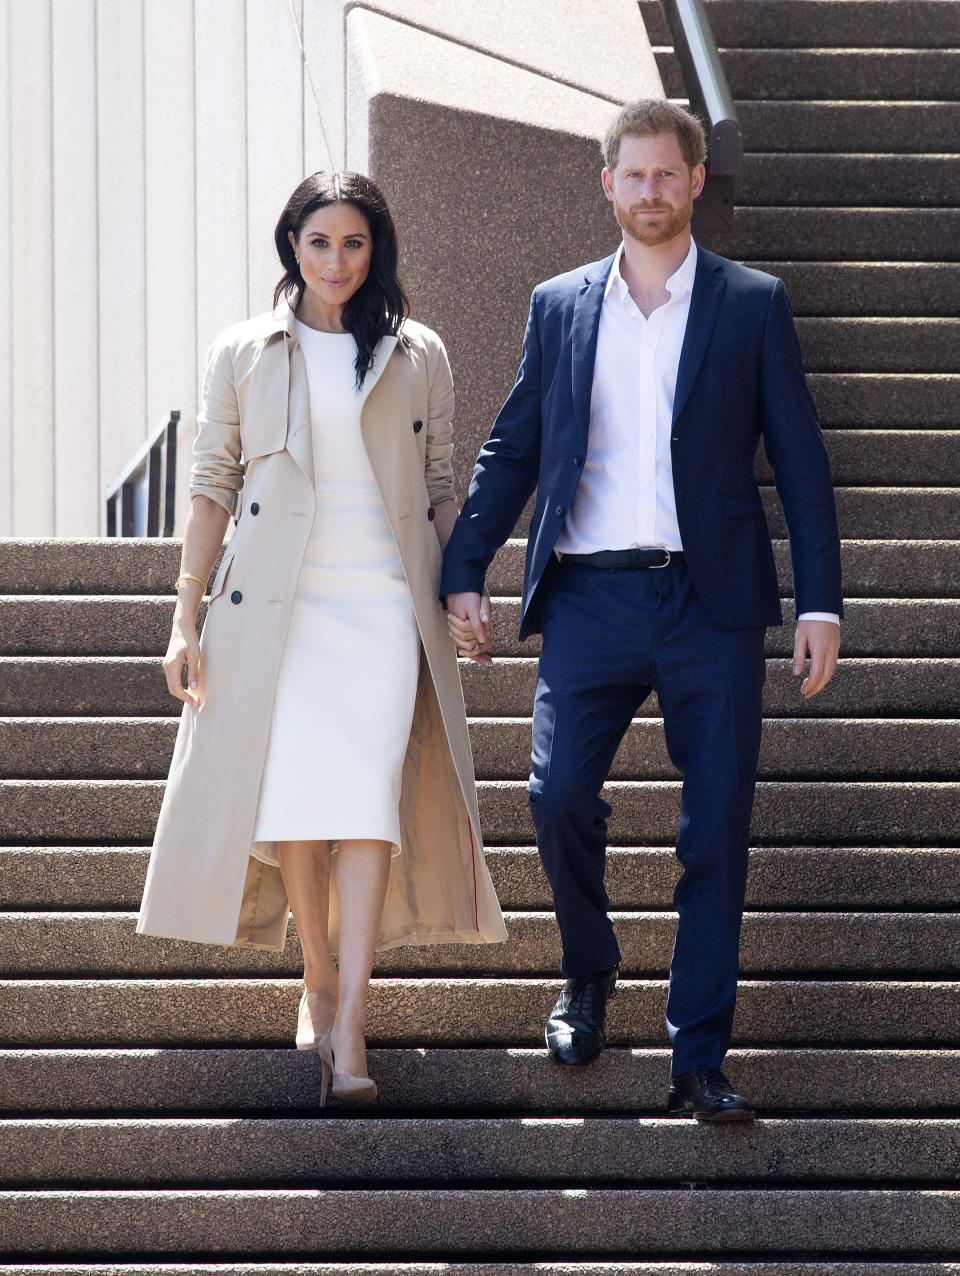 Harry compared living as part of the royal family and the subsequent media scrutiny as